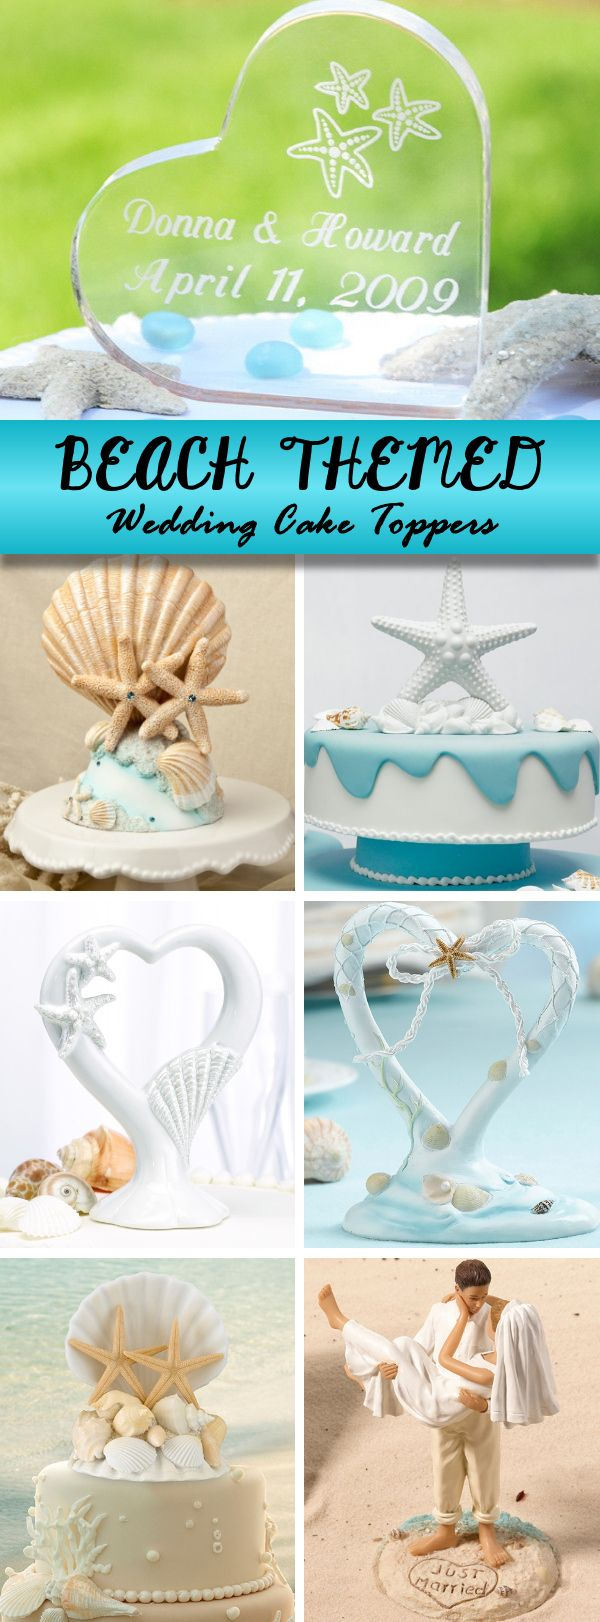 Our favorite beach themed wedding cake toppers!